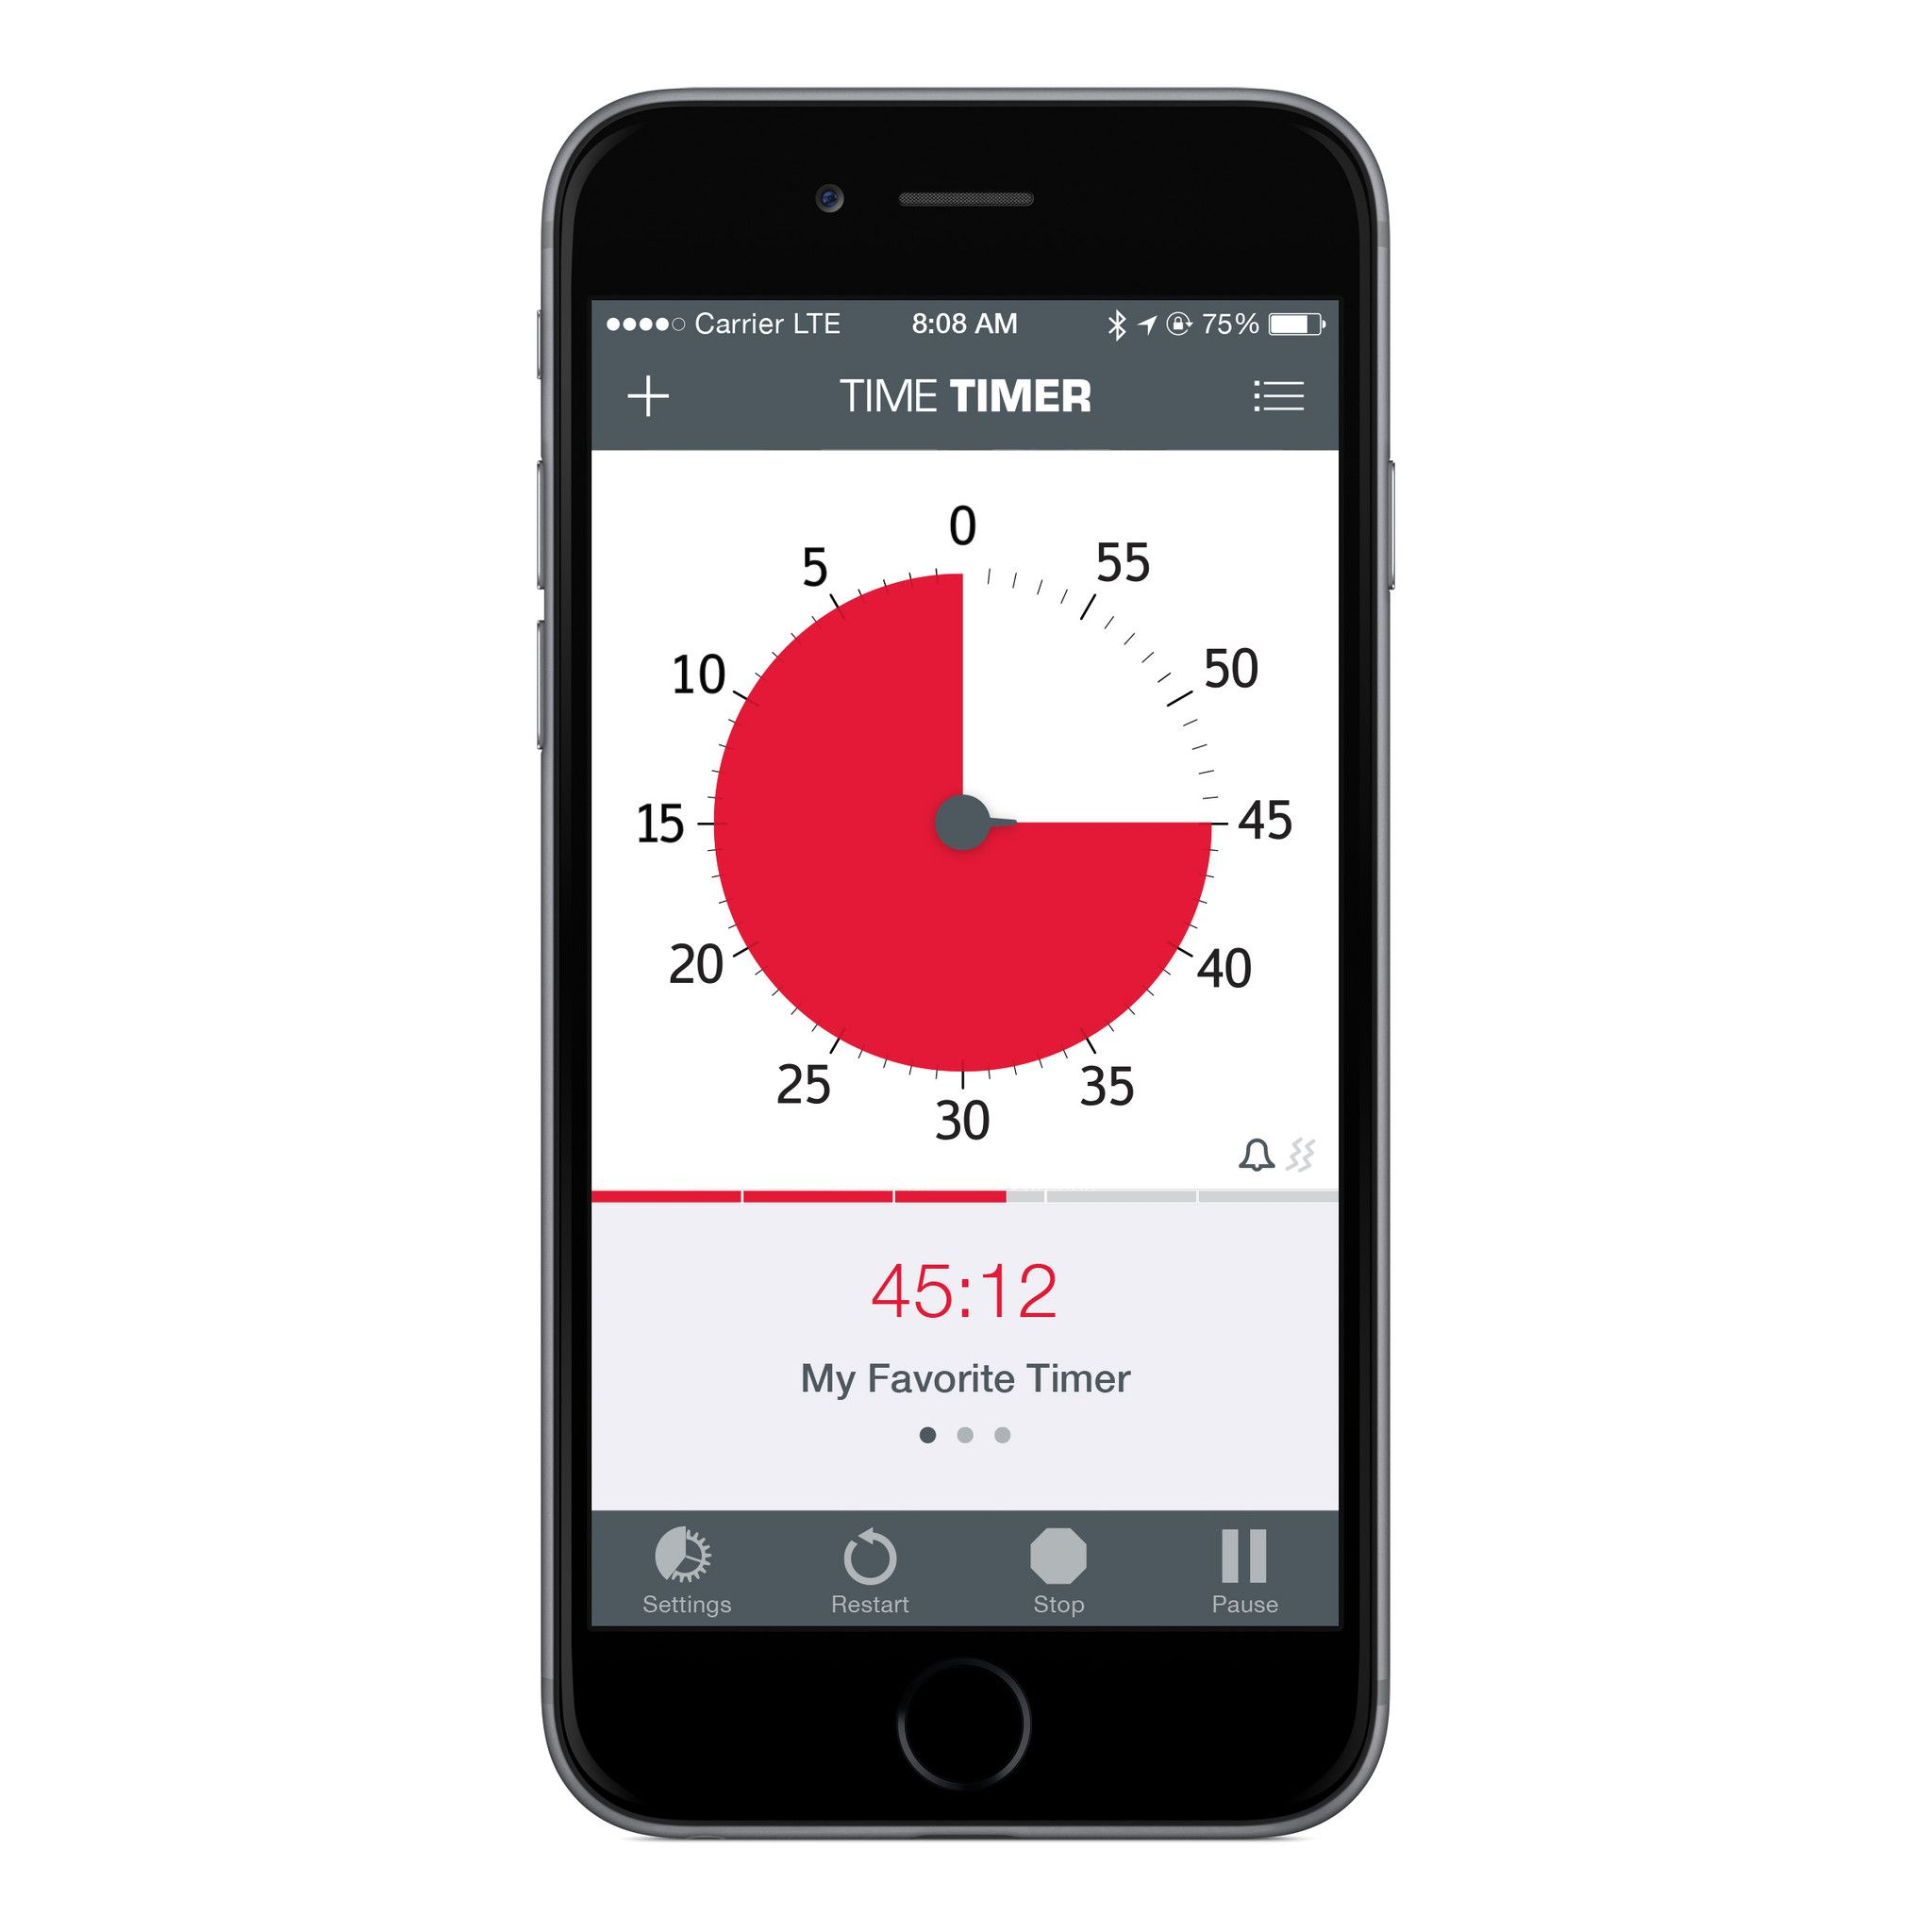 iPhone App Time timer, Classroom timer, Iphone apps